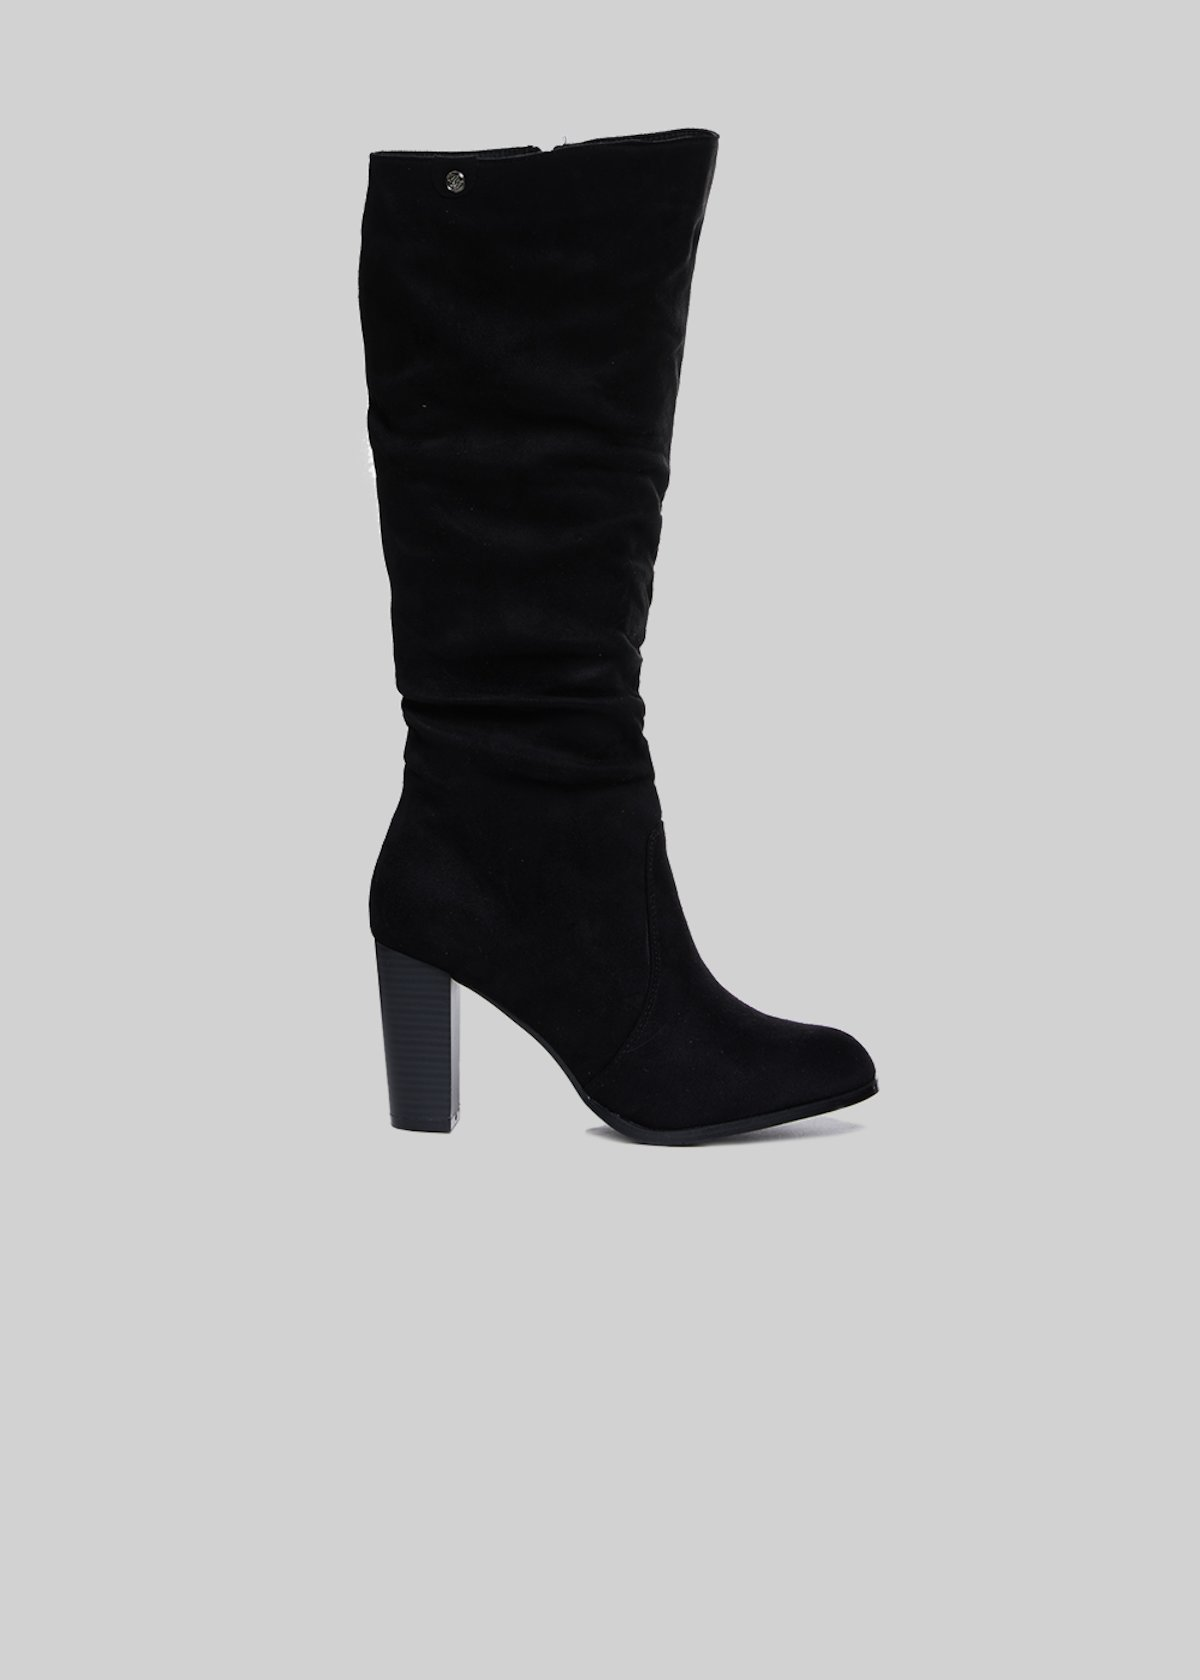 Shyma boots with high leg - Black